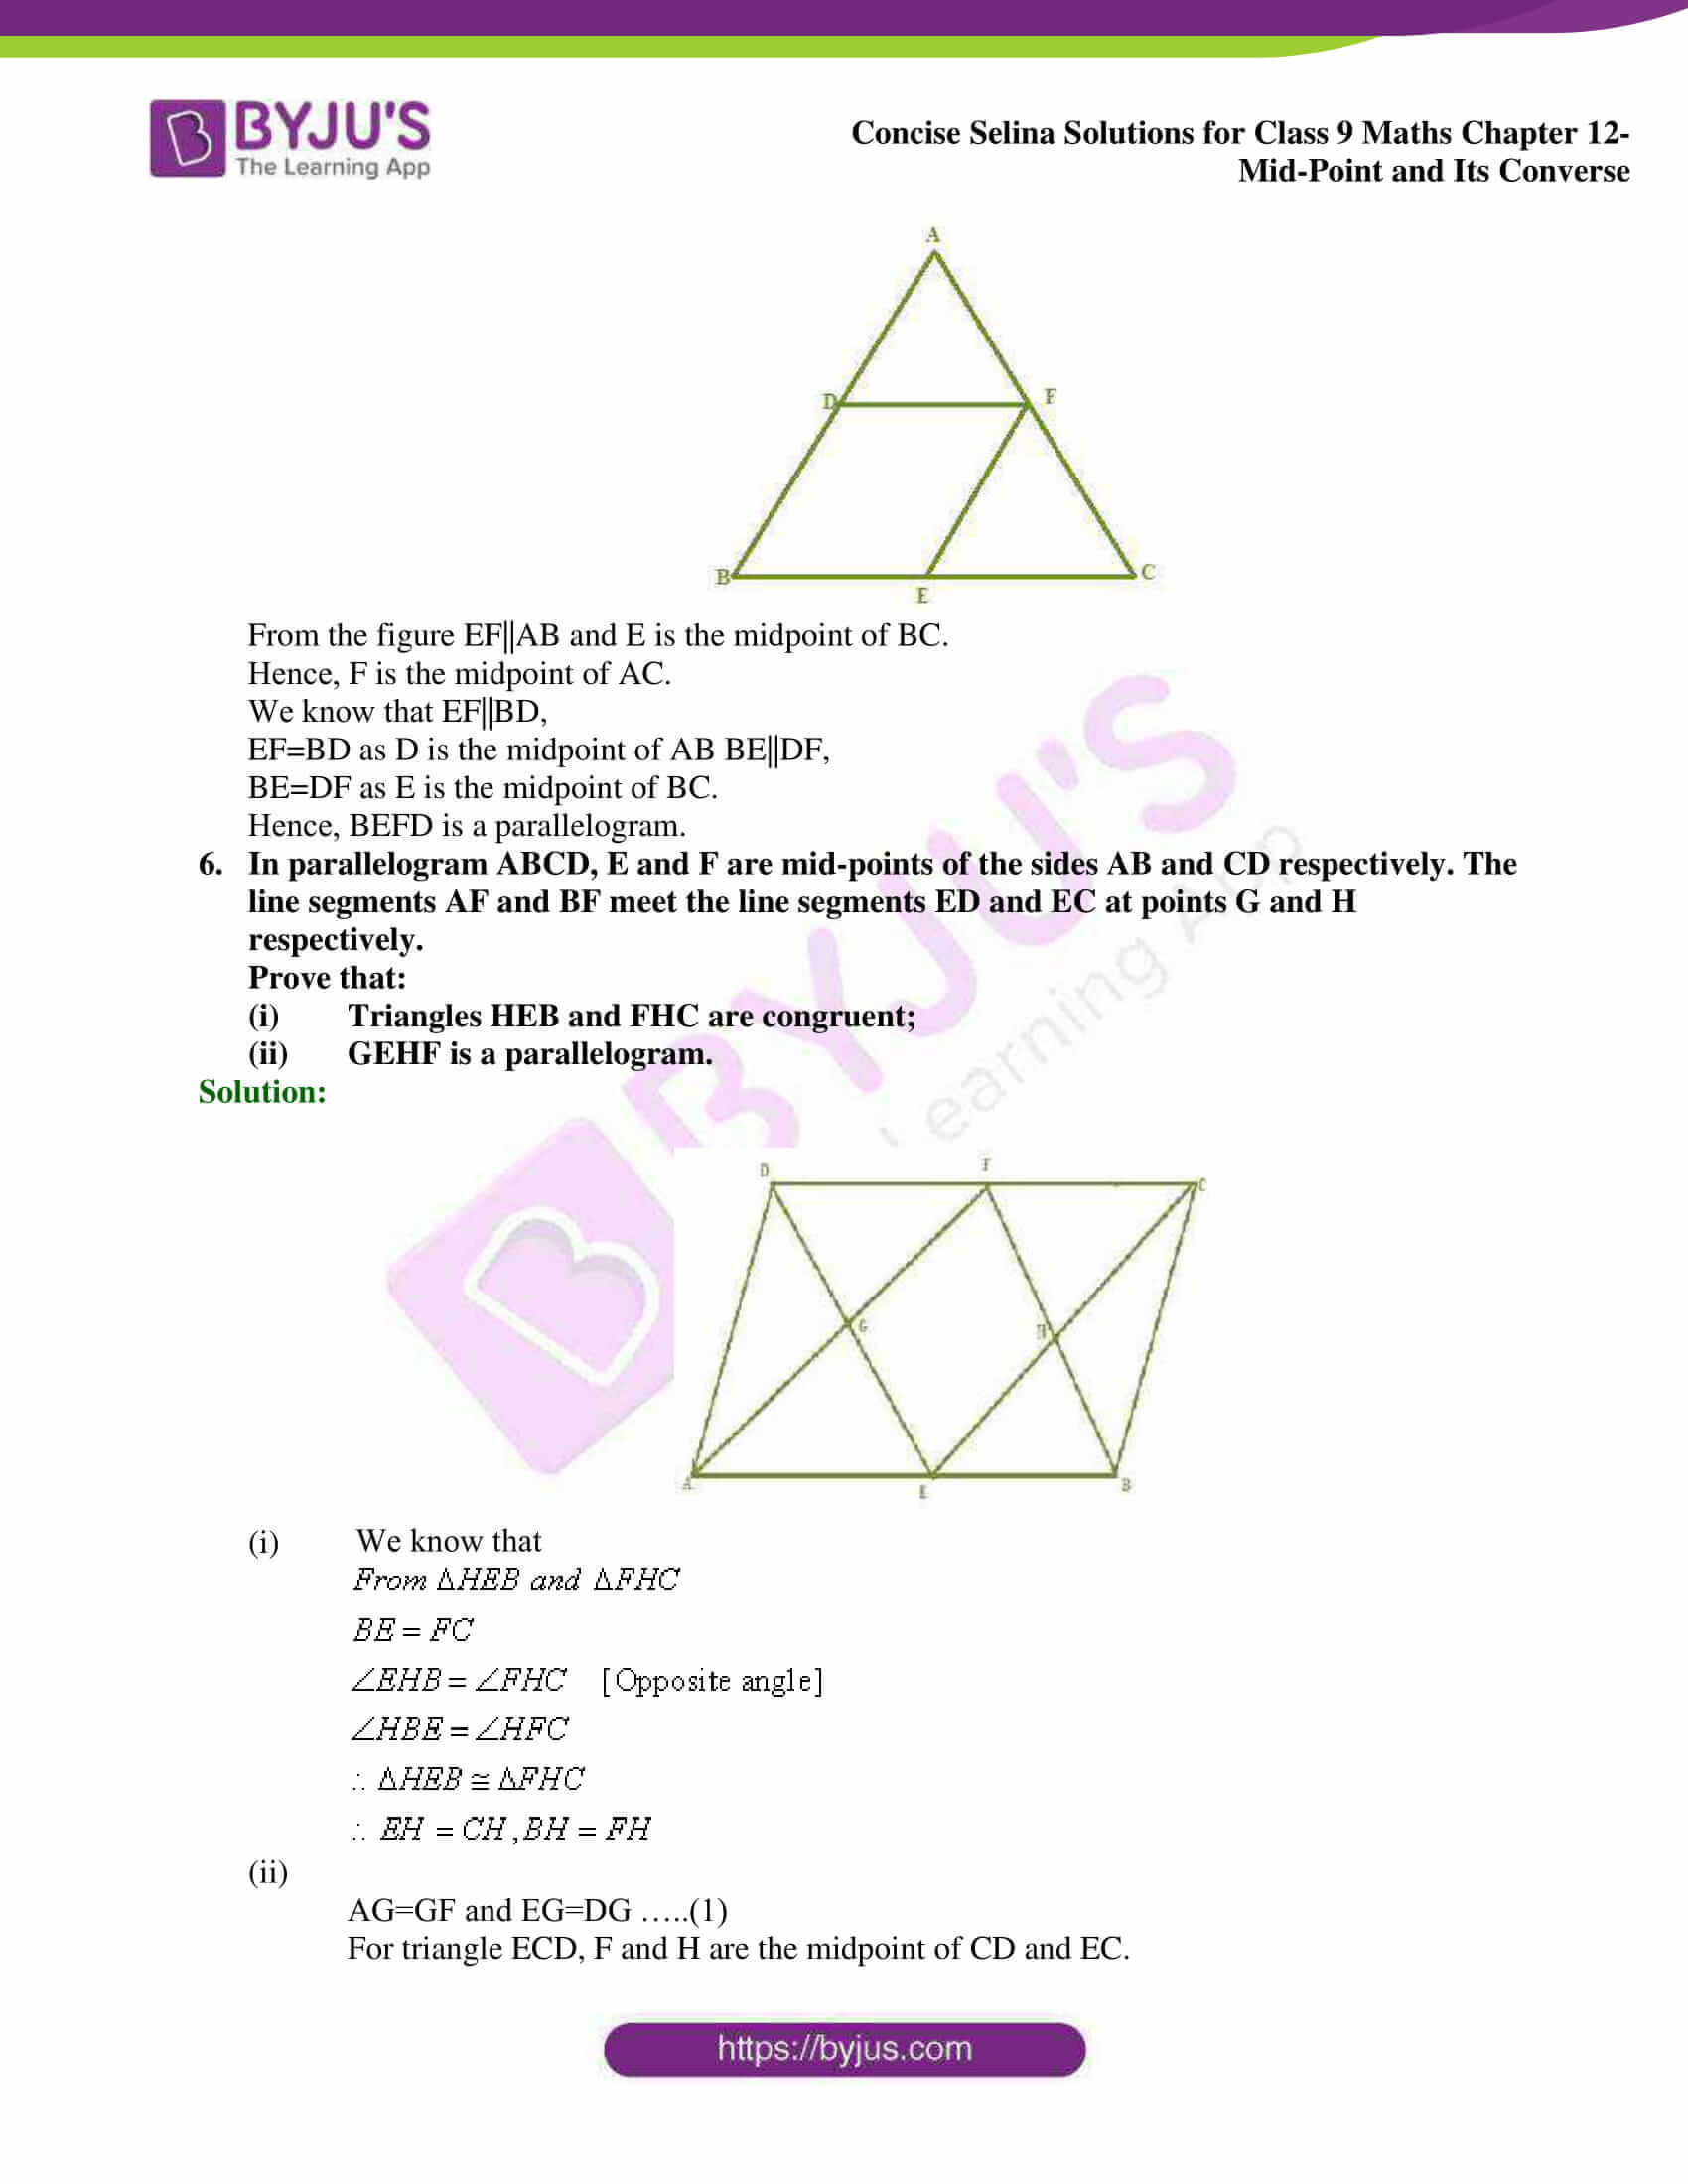 selina Solutions for Class 9 Maths Chapter 12 16